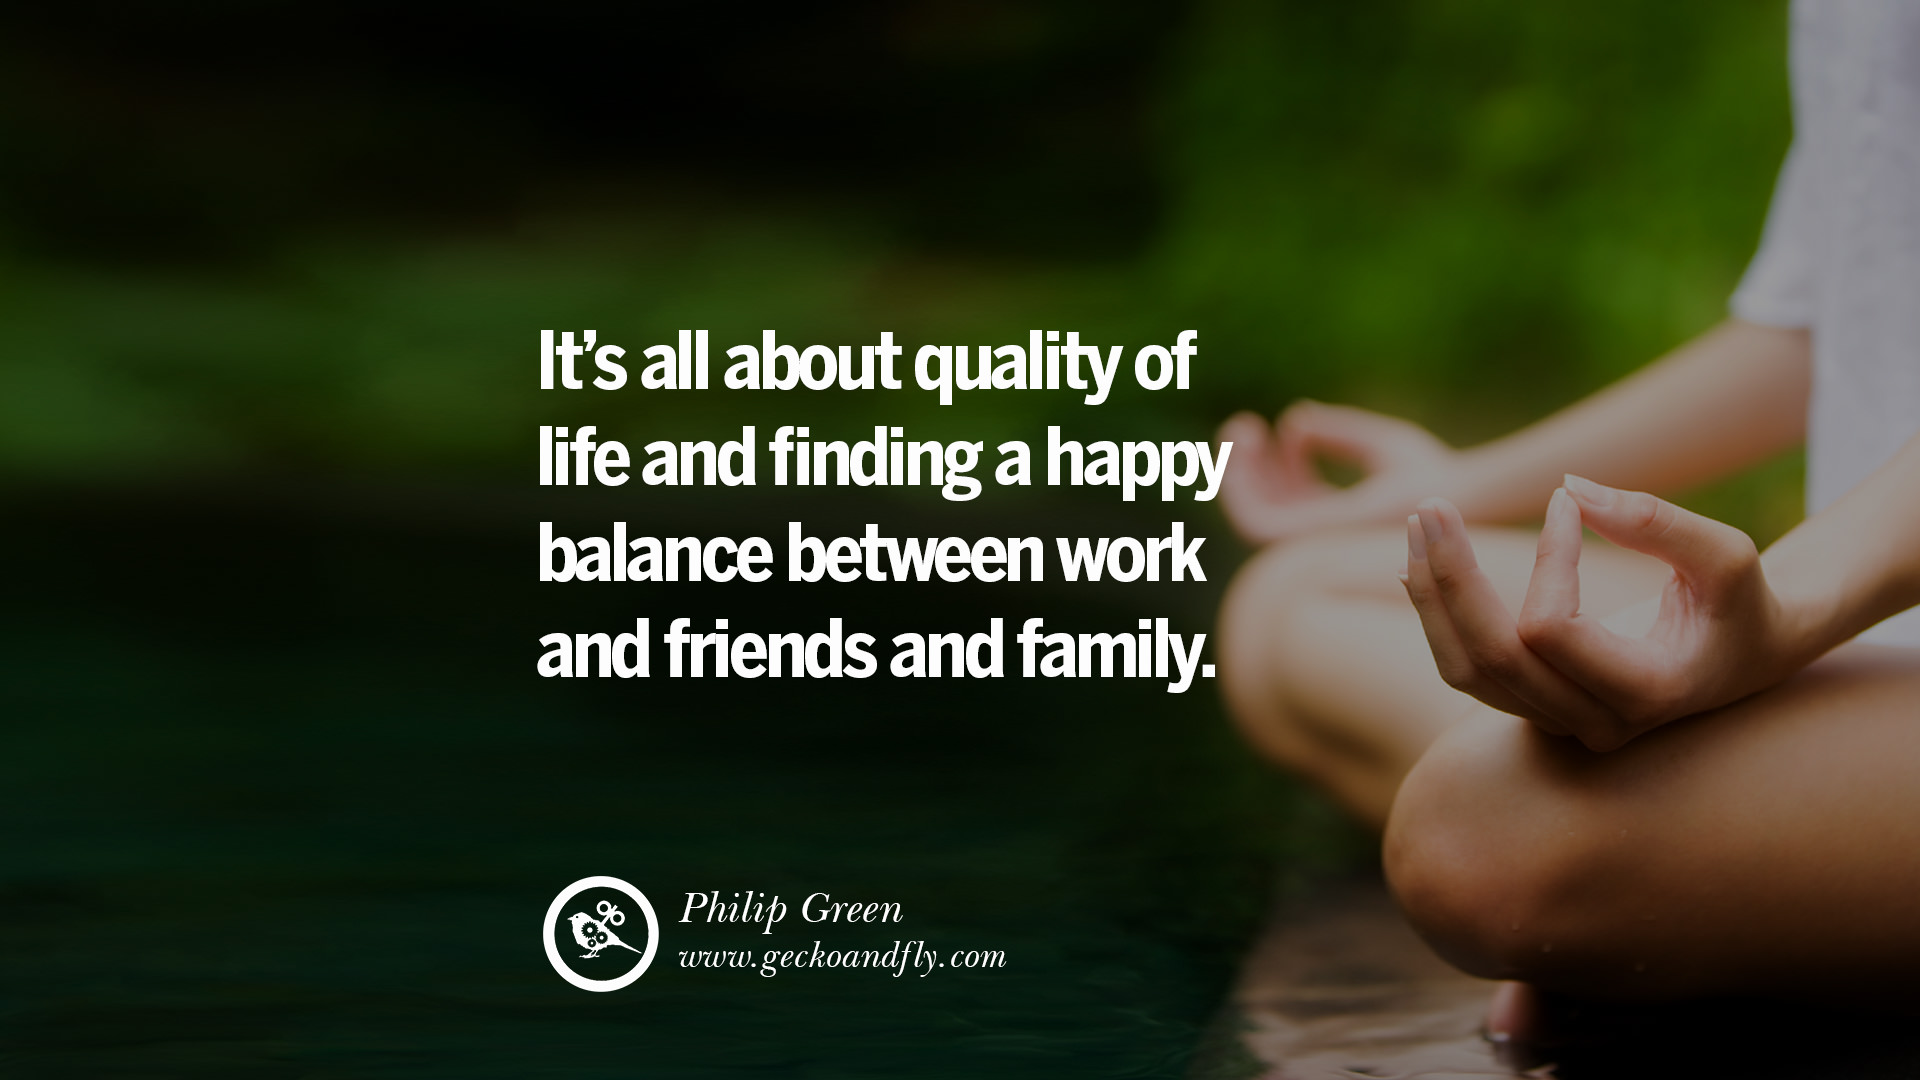 Quotes Between Work And Family | Quotes for Happy Family Life Quotes  lp00lyp